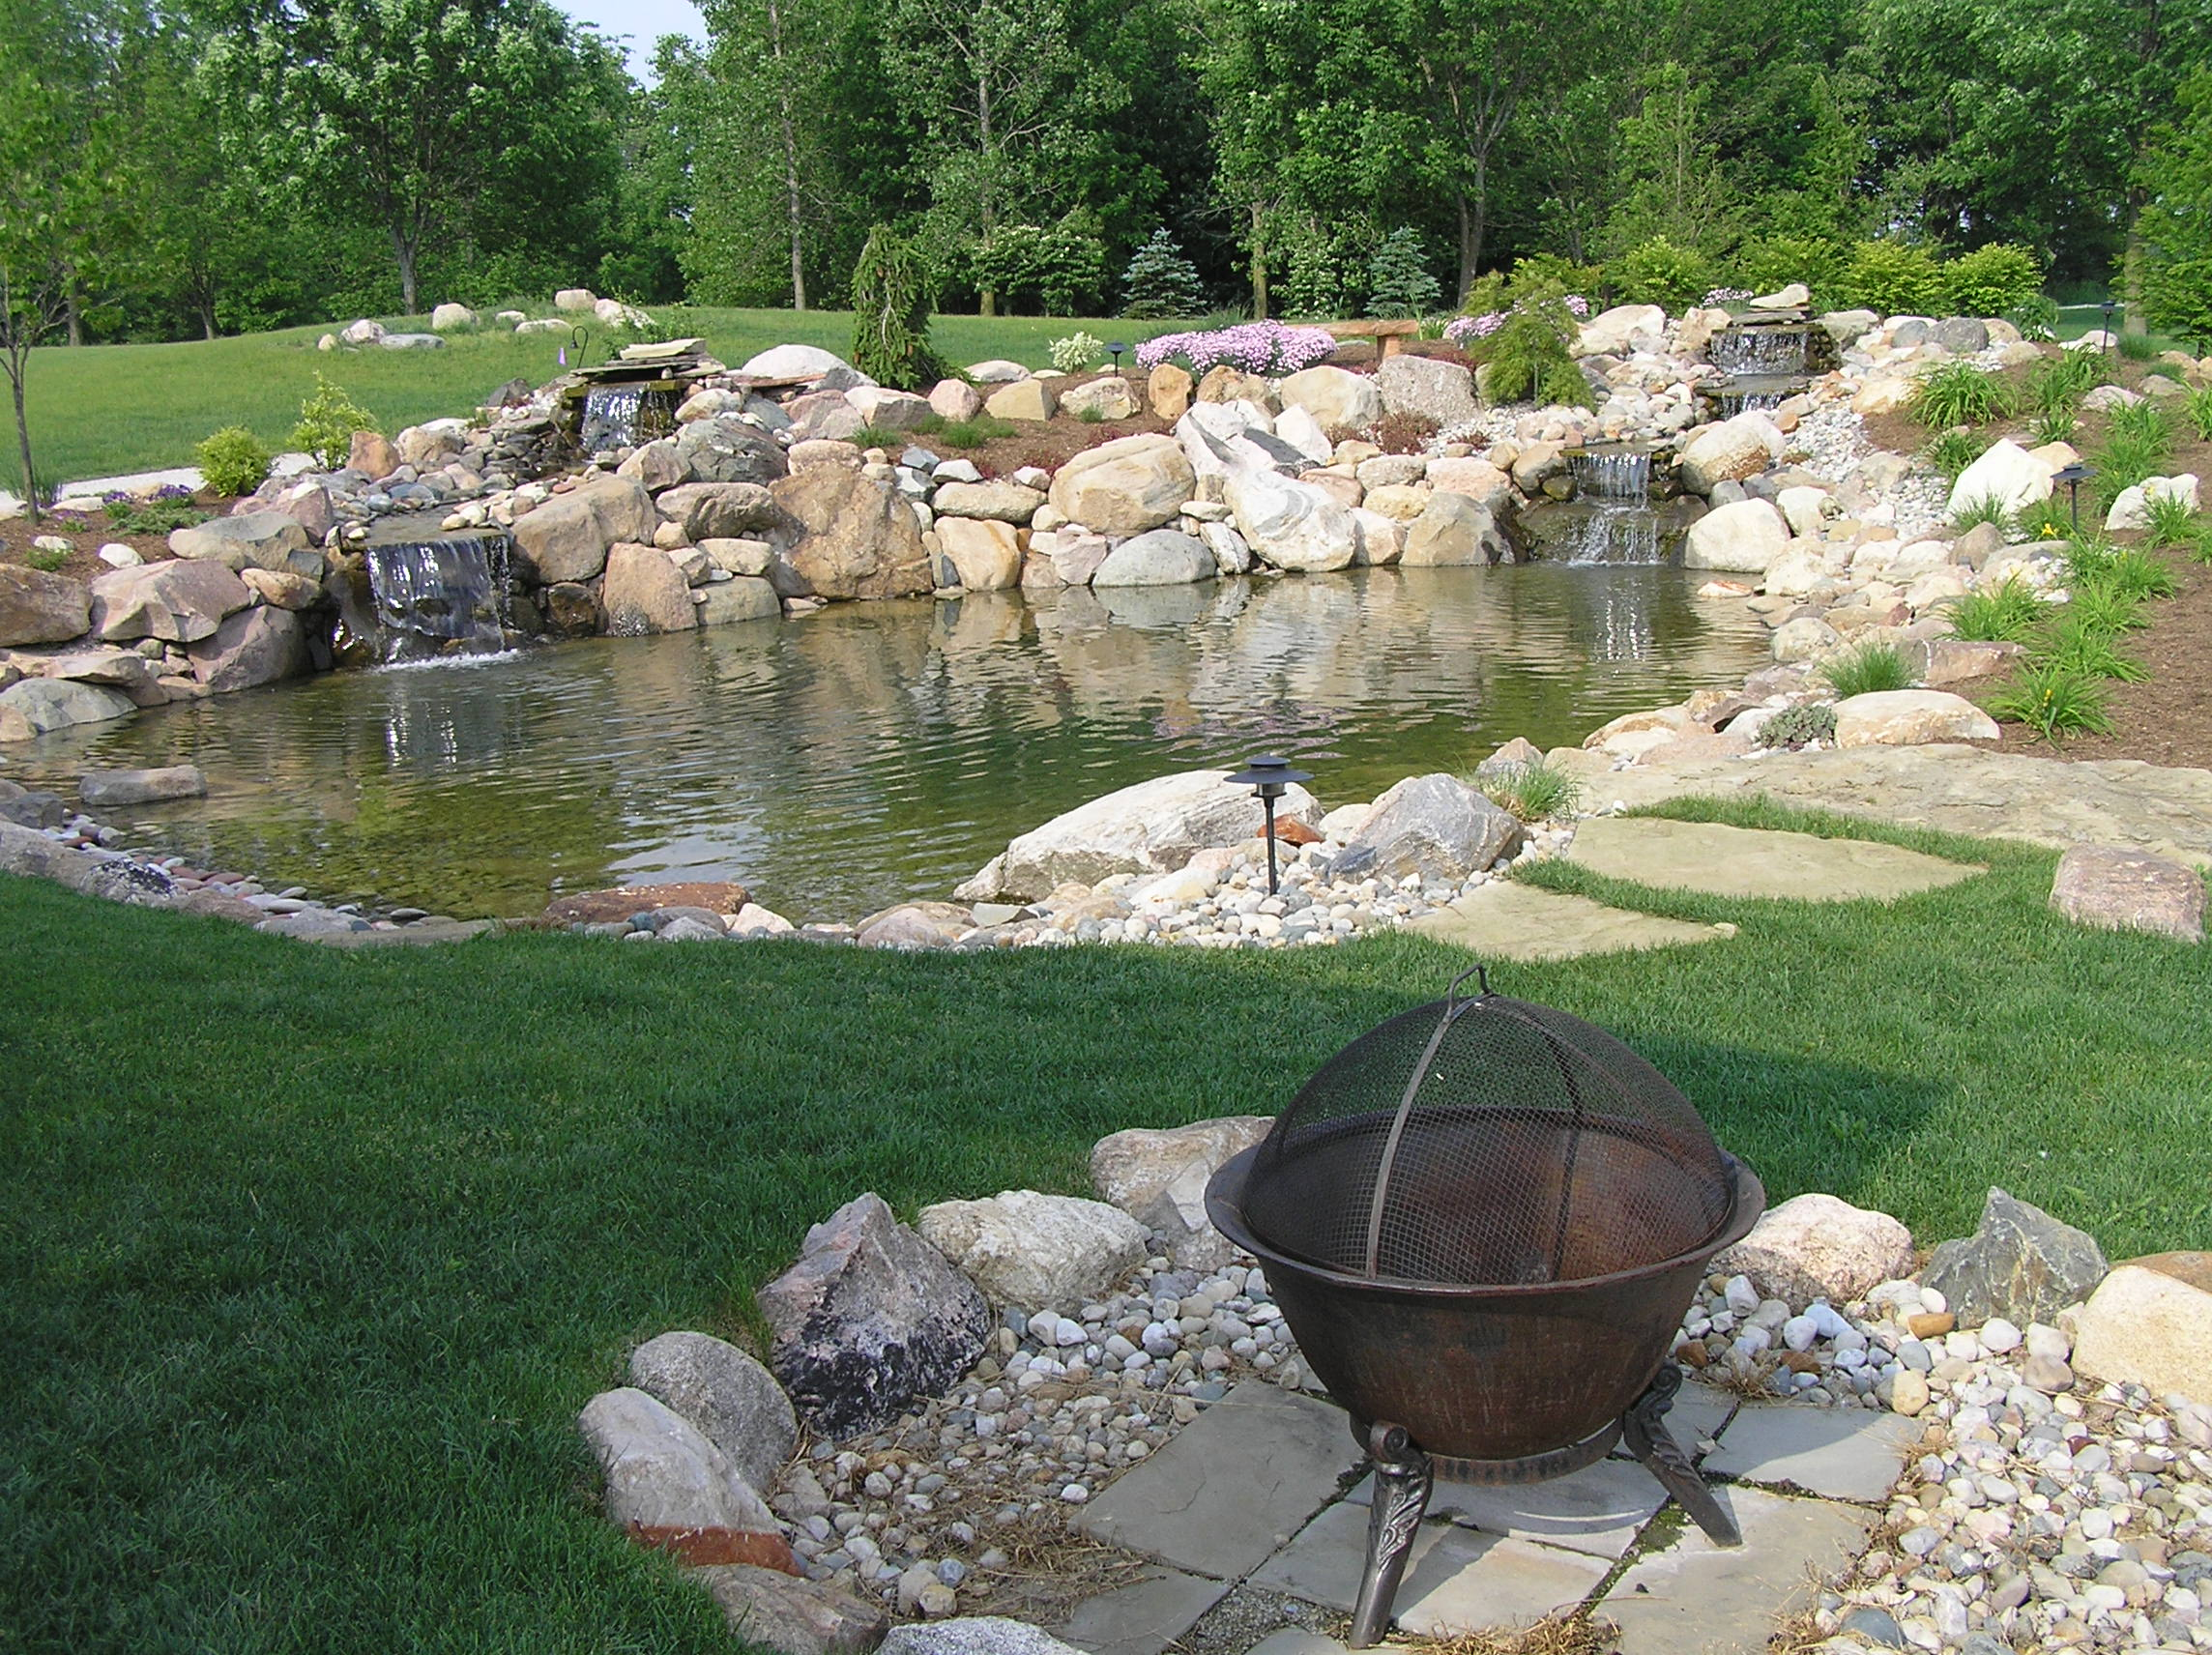 WATERFALL-POND.JPG